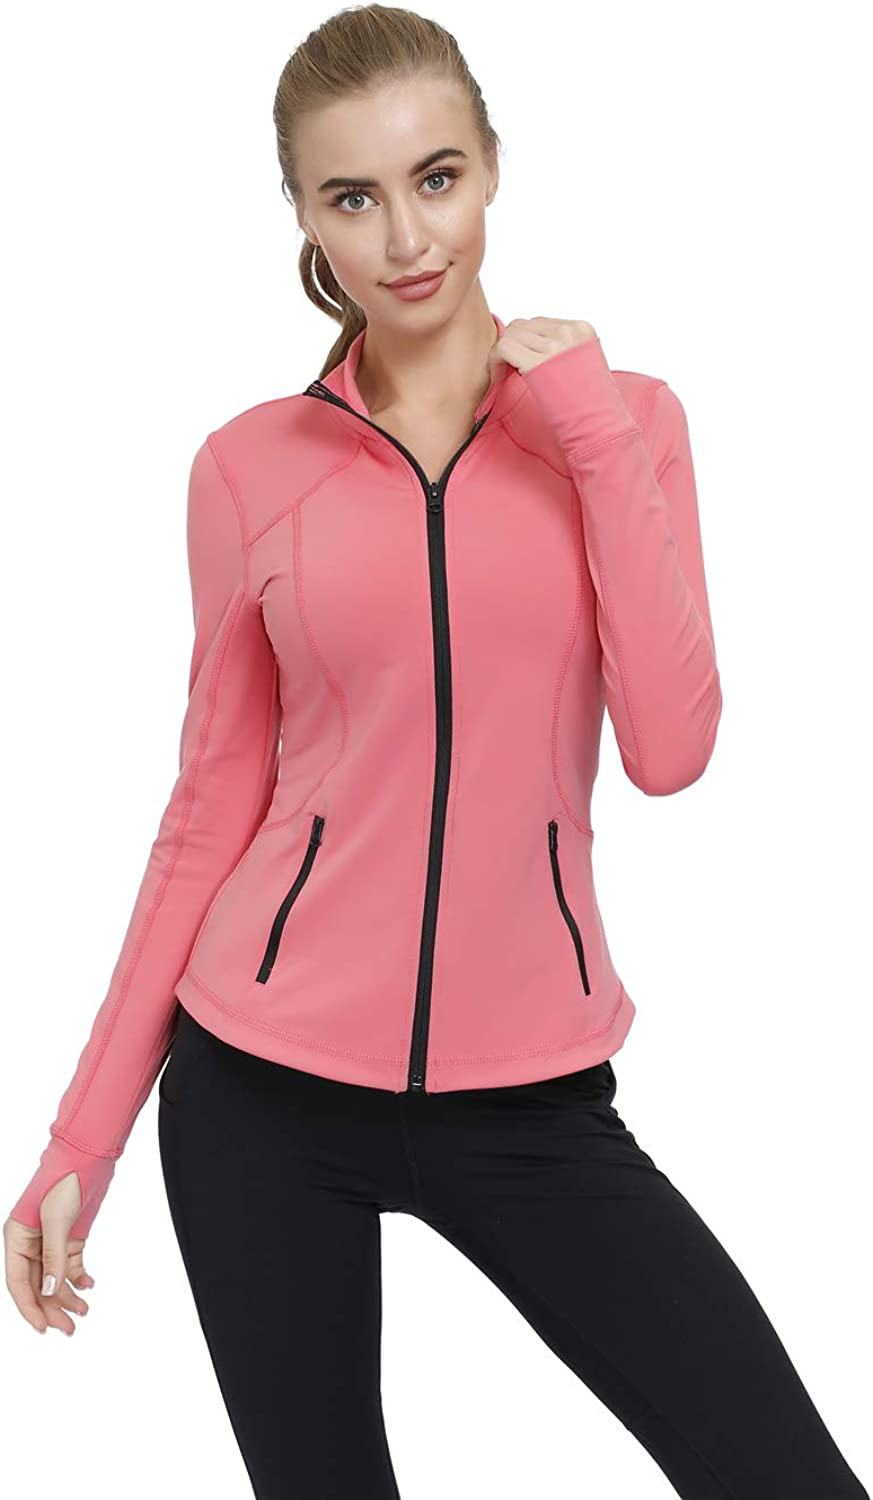 Dolcevida Womens Slim Fit Workout Track Jackets Full Zip Stretchy Warm up Active Running Jacket with Thumb Holes